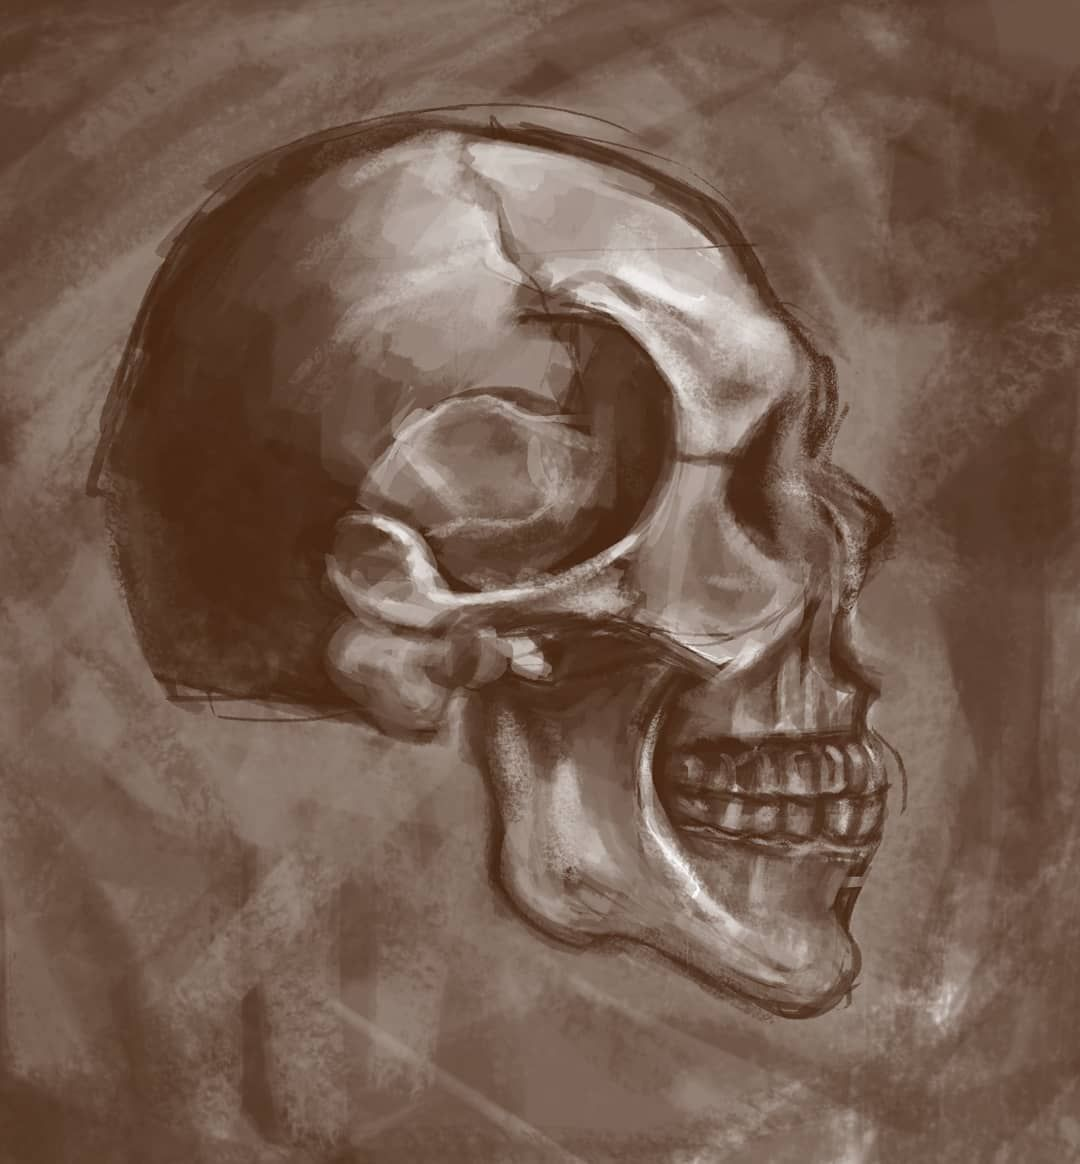 Some Digital Stu S Of Skull Side And Front View Hope